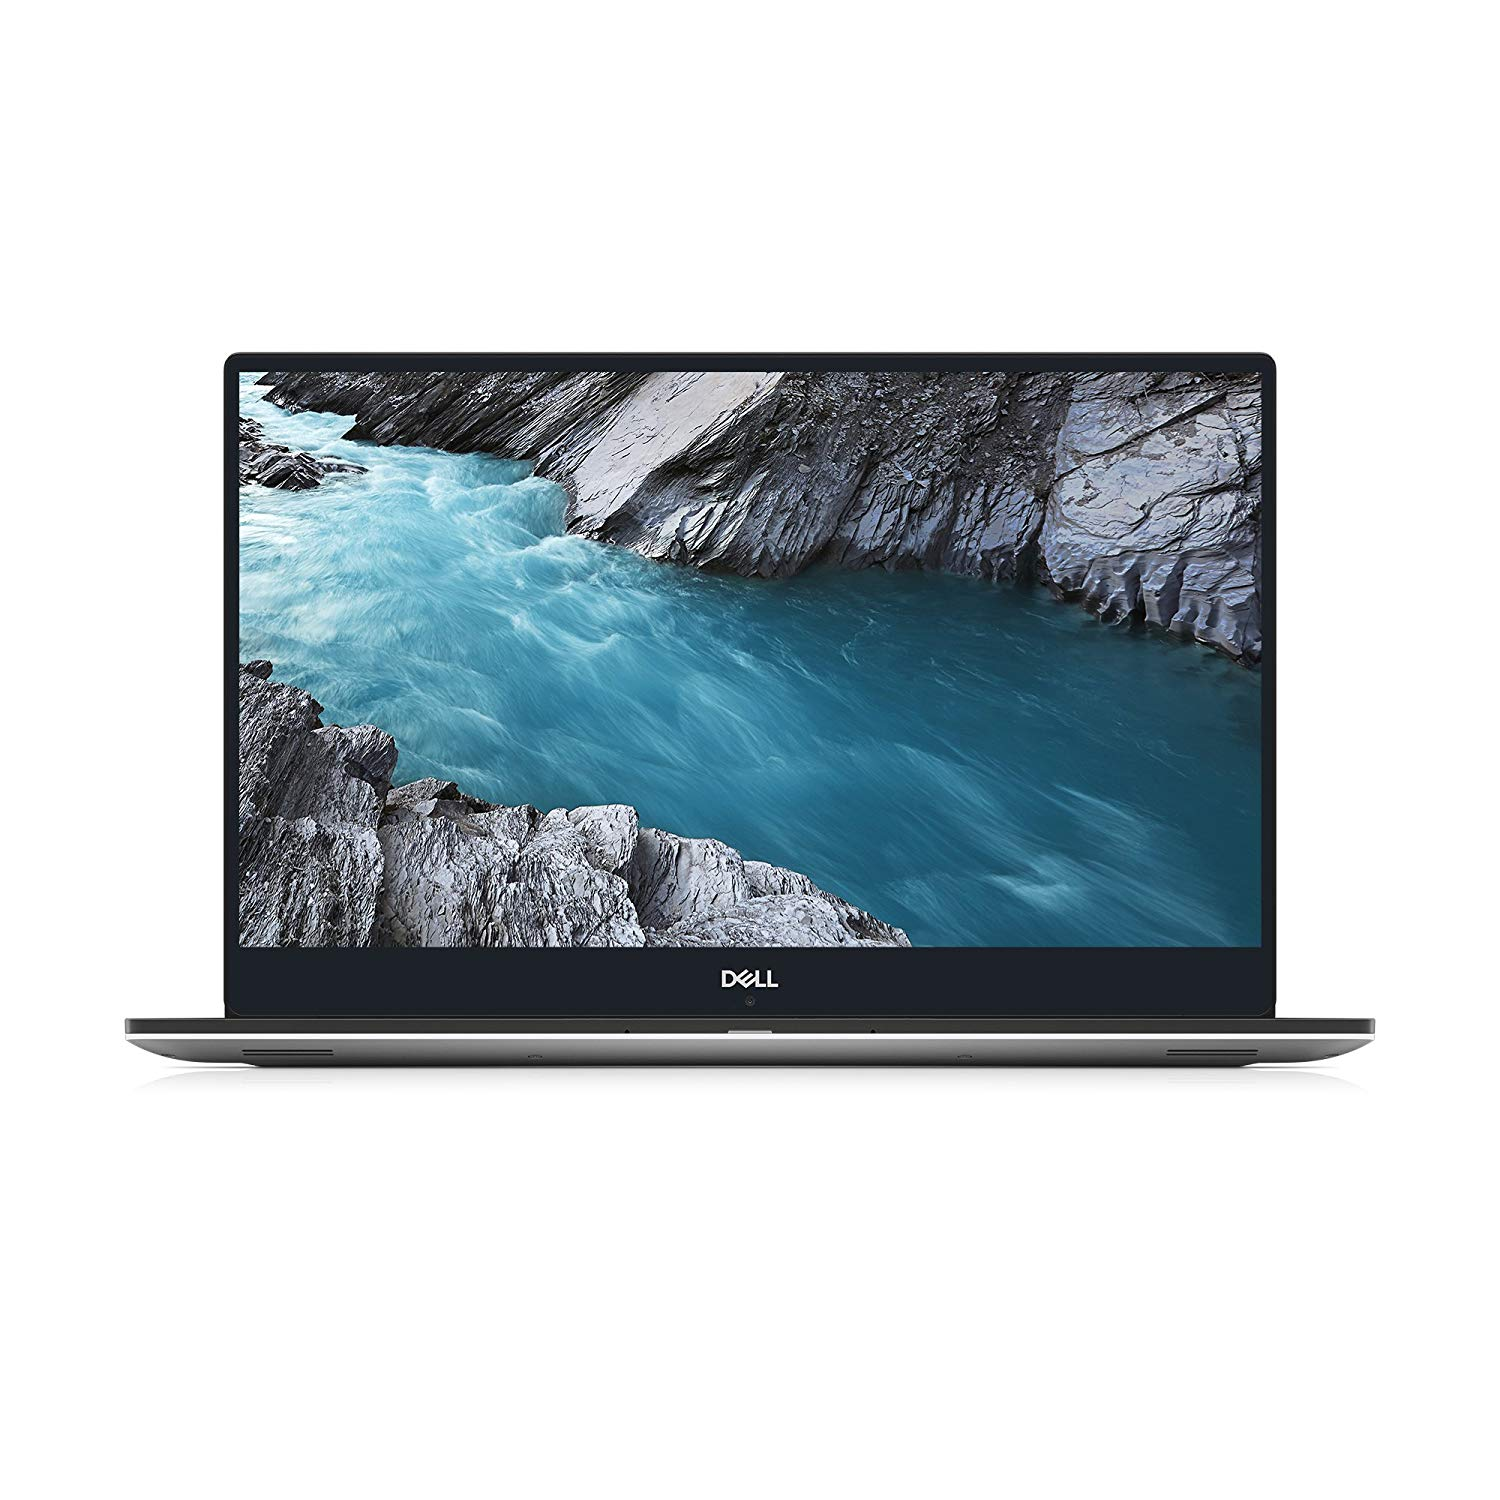 Dell XPS 15 9560 - Best Laptop for Machine Learning